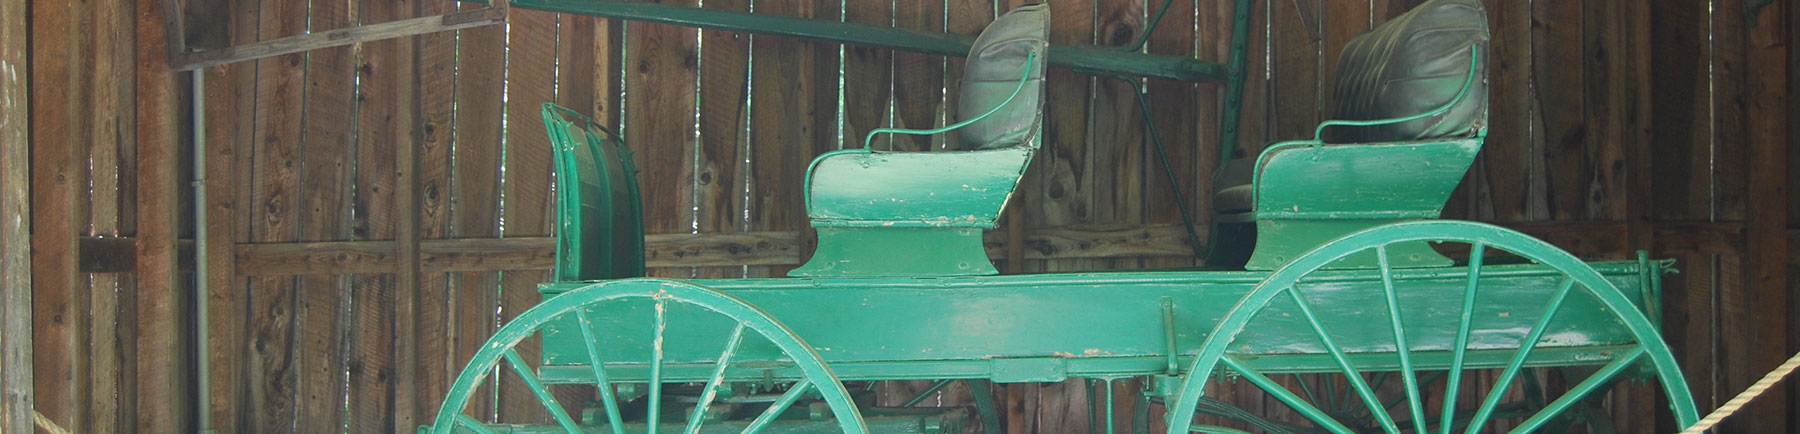 image of old green buggy with leather seats inside of a barn